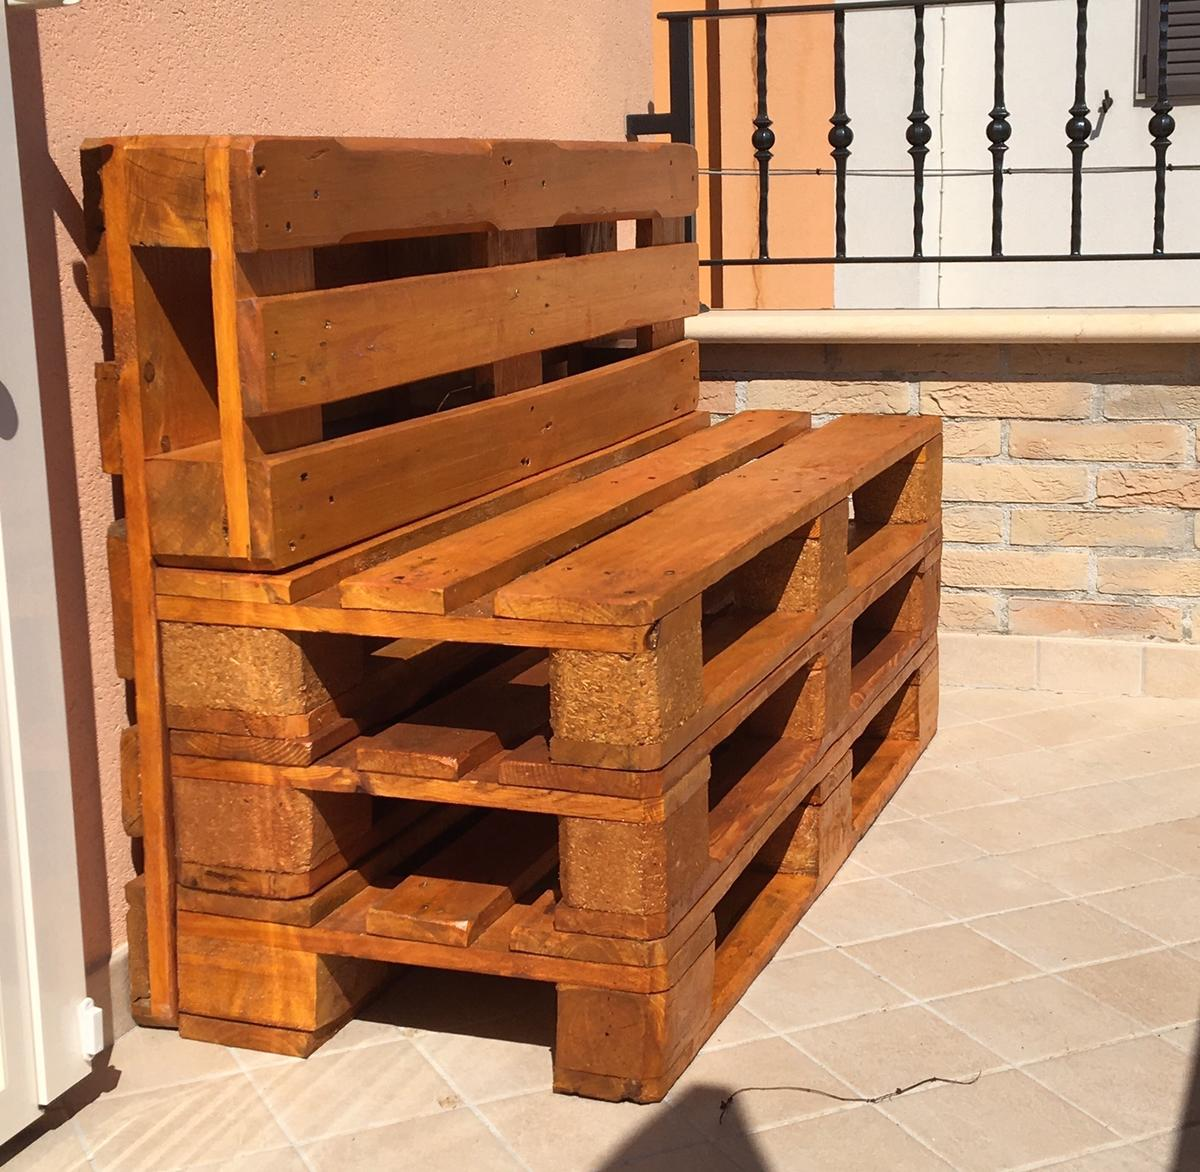 Panchina Divanetto In Legno Pallet In Mosciano Sant Angelo For